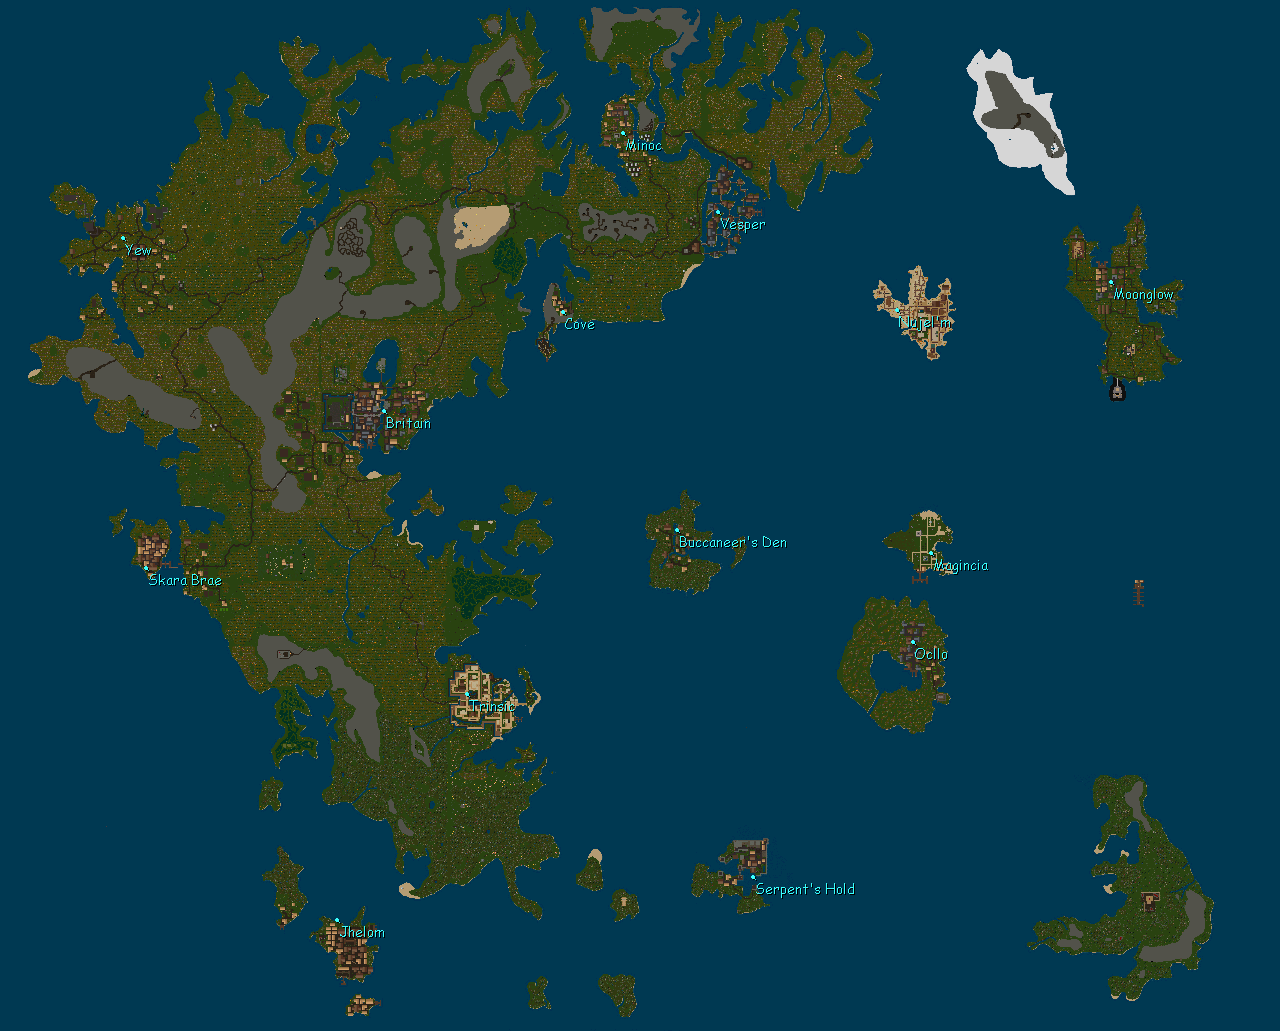 Fileuo world map largeg ultima online forever wiki fileuo world map largeg gumiabroncs Gallery